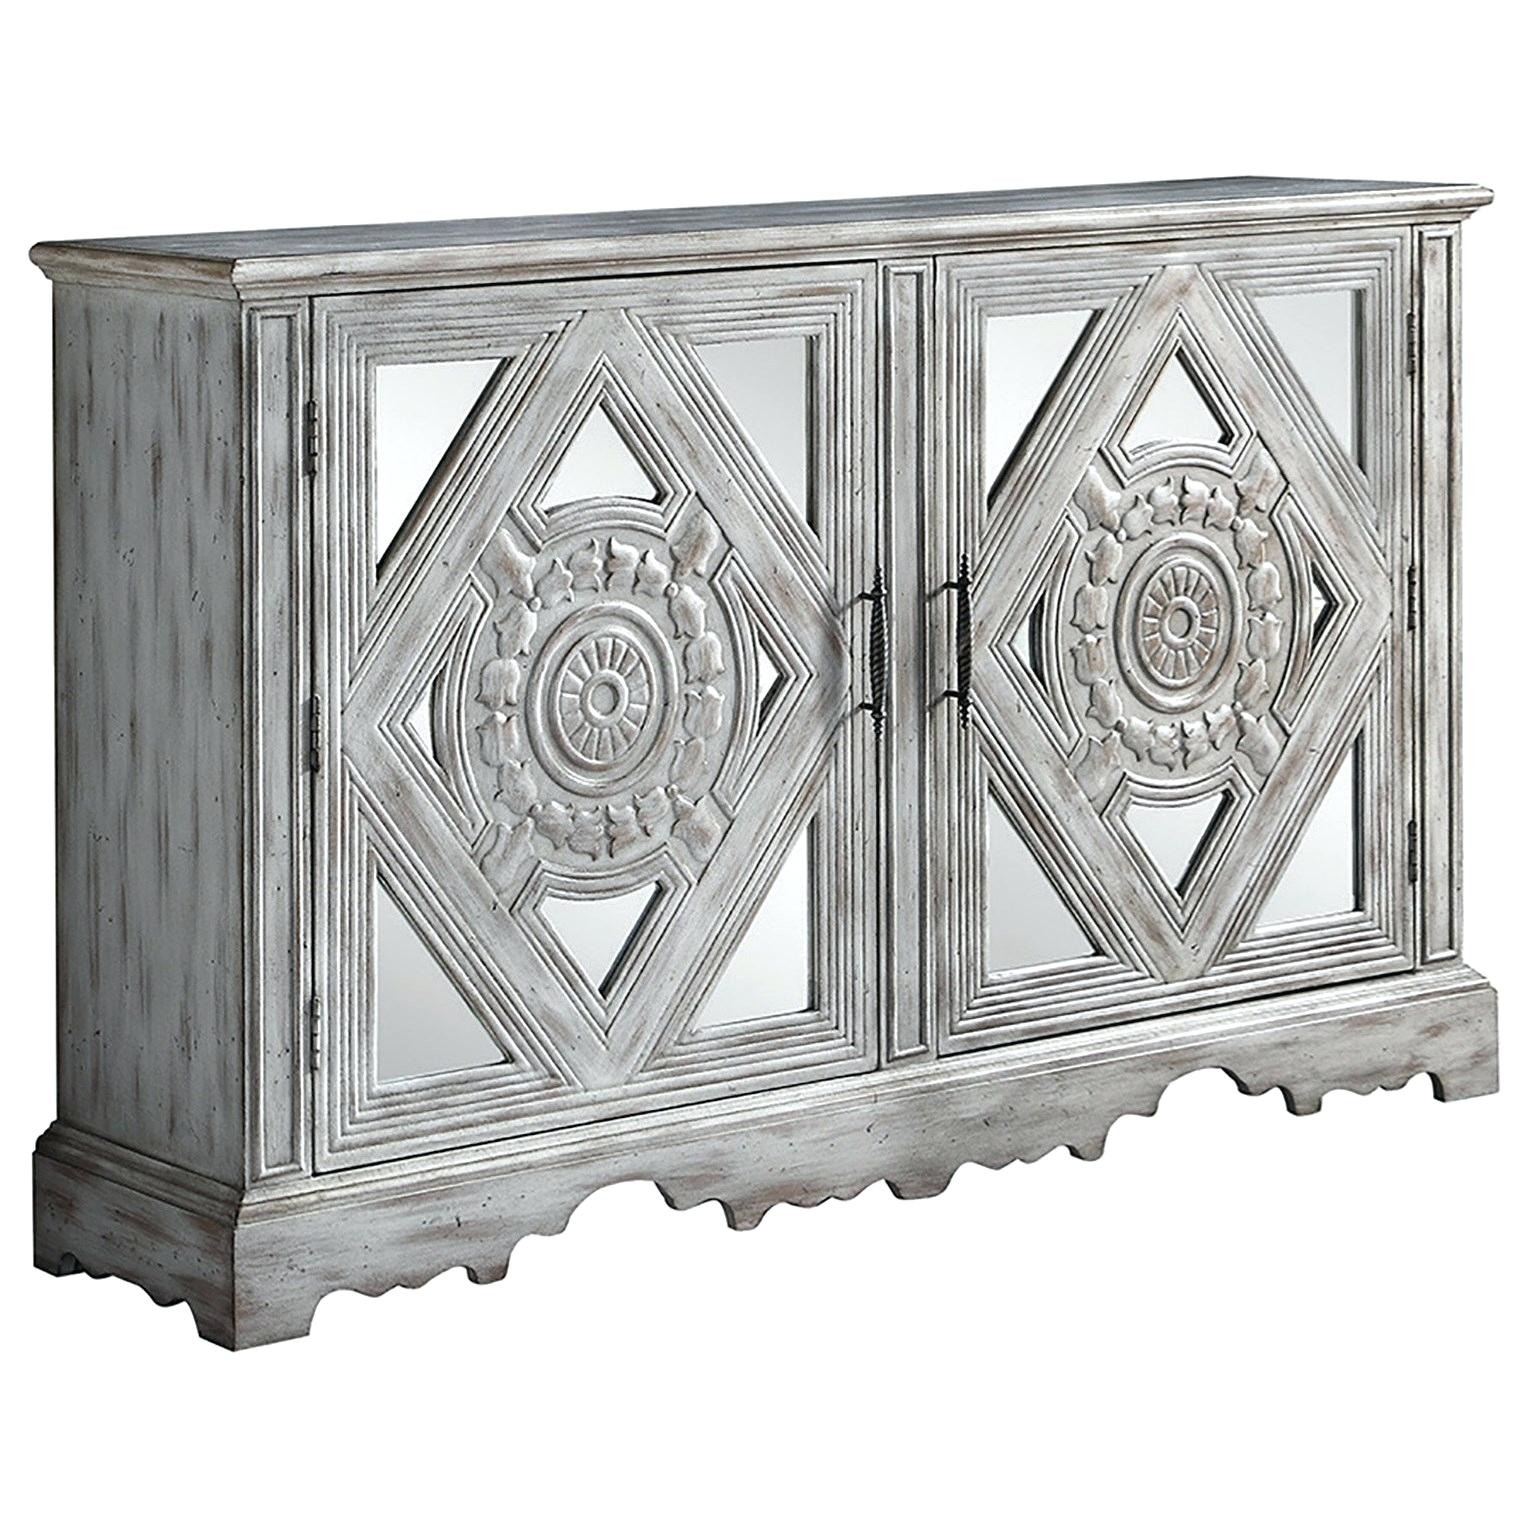 coaster accent cabinets distressed grey cabinet with ornate doors and drawers table small modern glass coffee miniature lamps moroccan mosaic garden rustic chic tables toronto